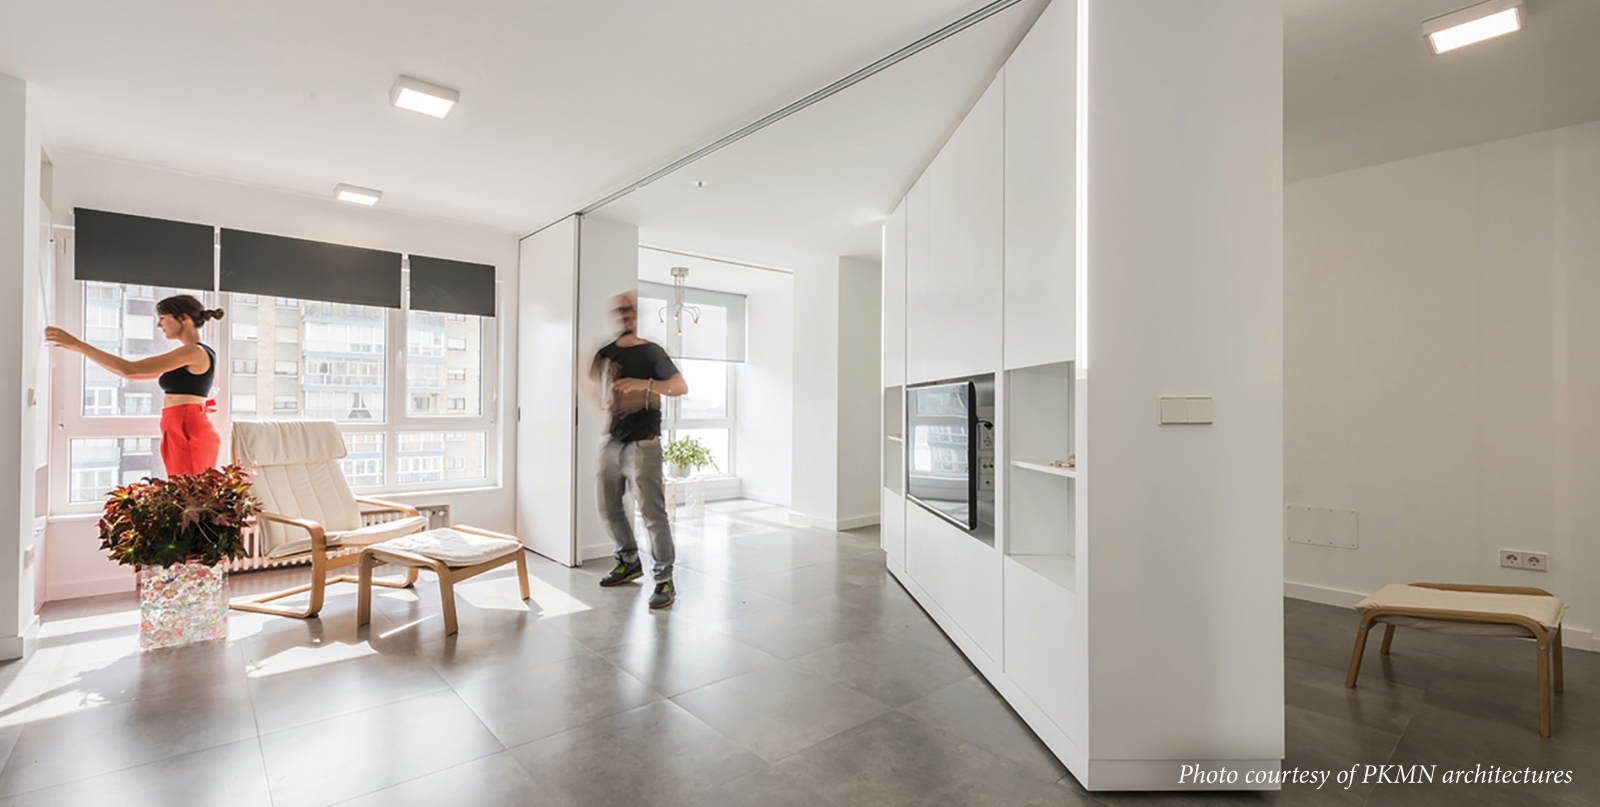 Transformable Apartments Maximize Limited Space